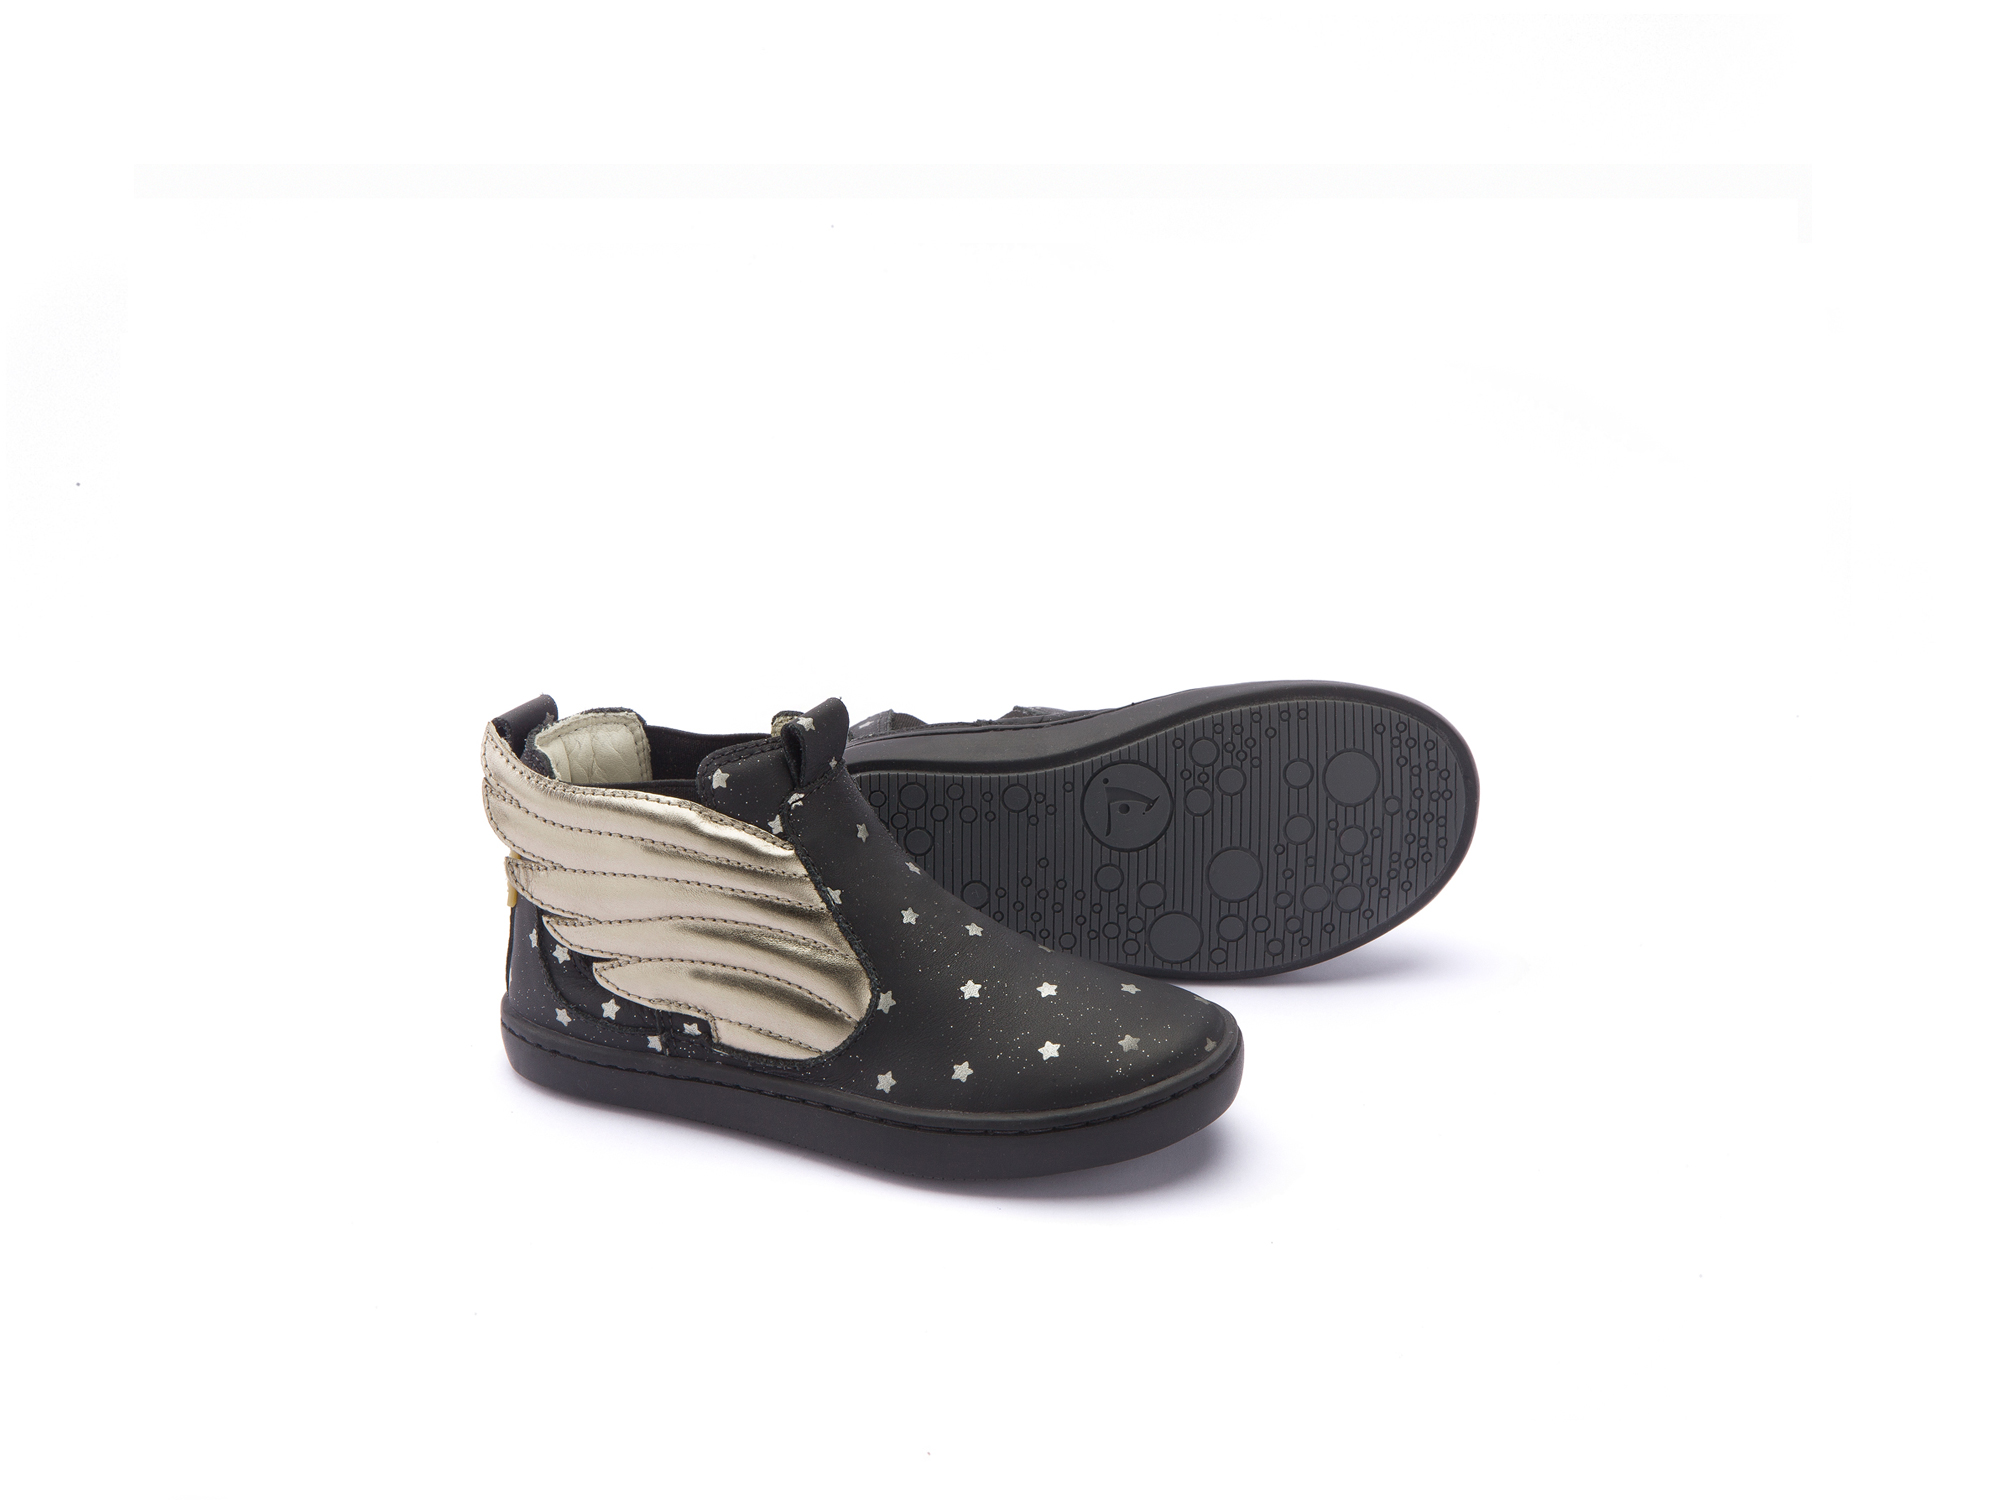 Bota Little Fantasy Black Stars/ Gold Sparkle Toddler 2 à 4 anos - 2